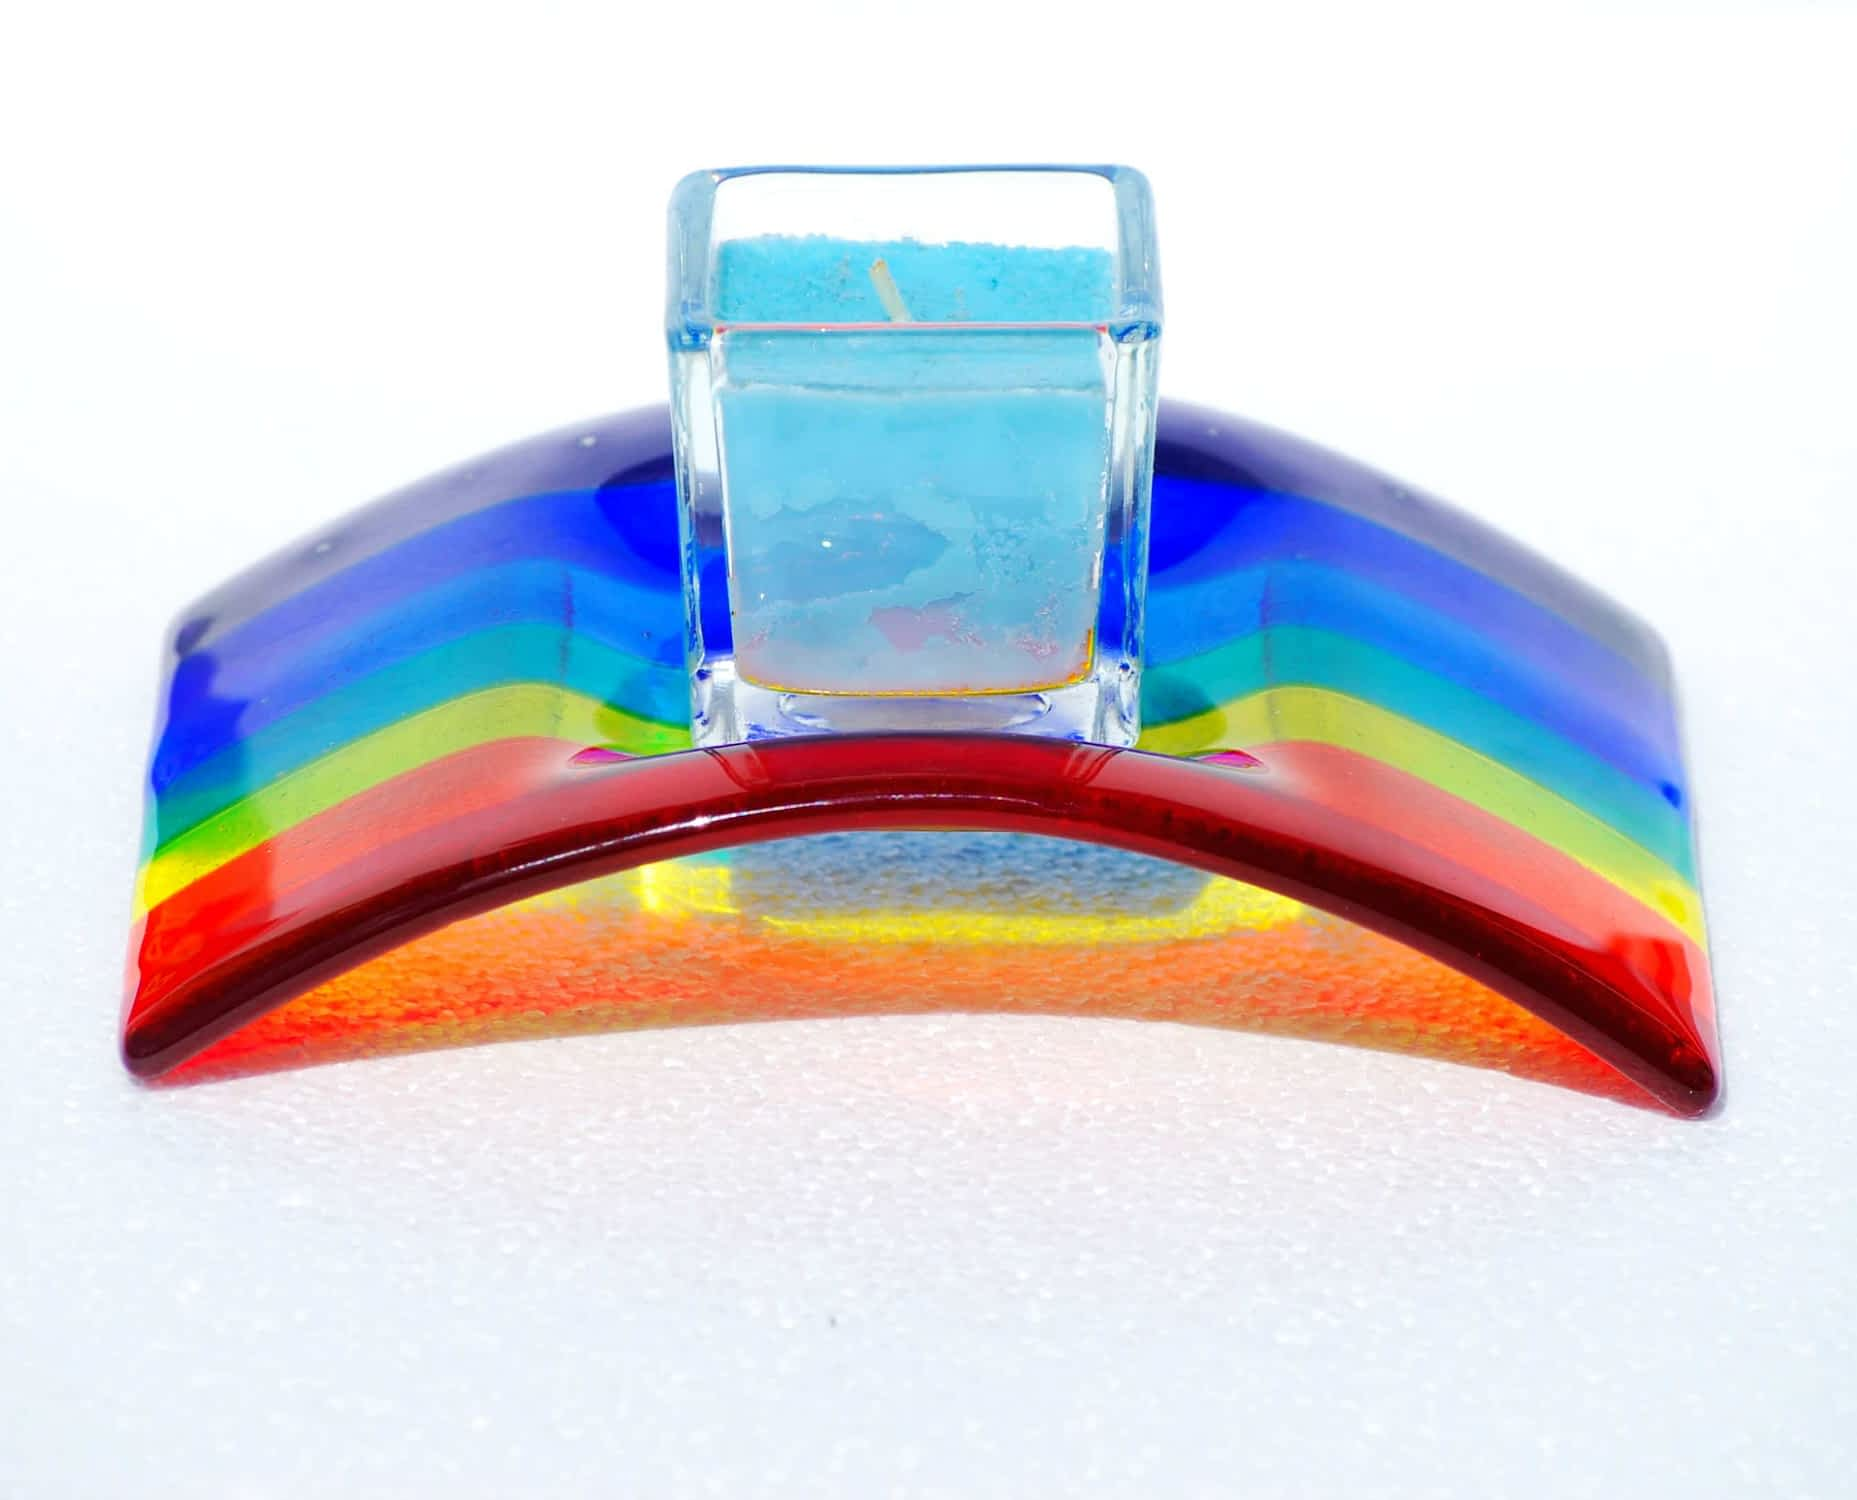 A Rainbow Candle Bridge Arch personalised in silver enamel with space for a candle or tealight in the centre recess.